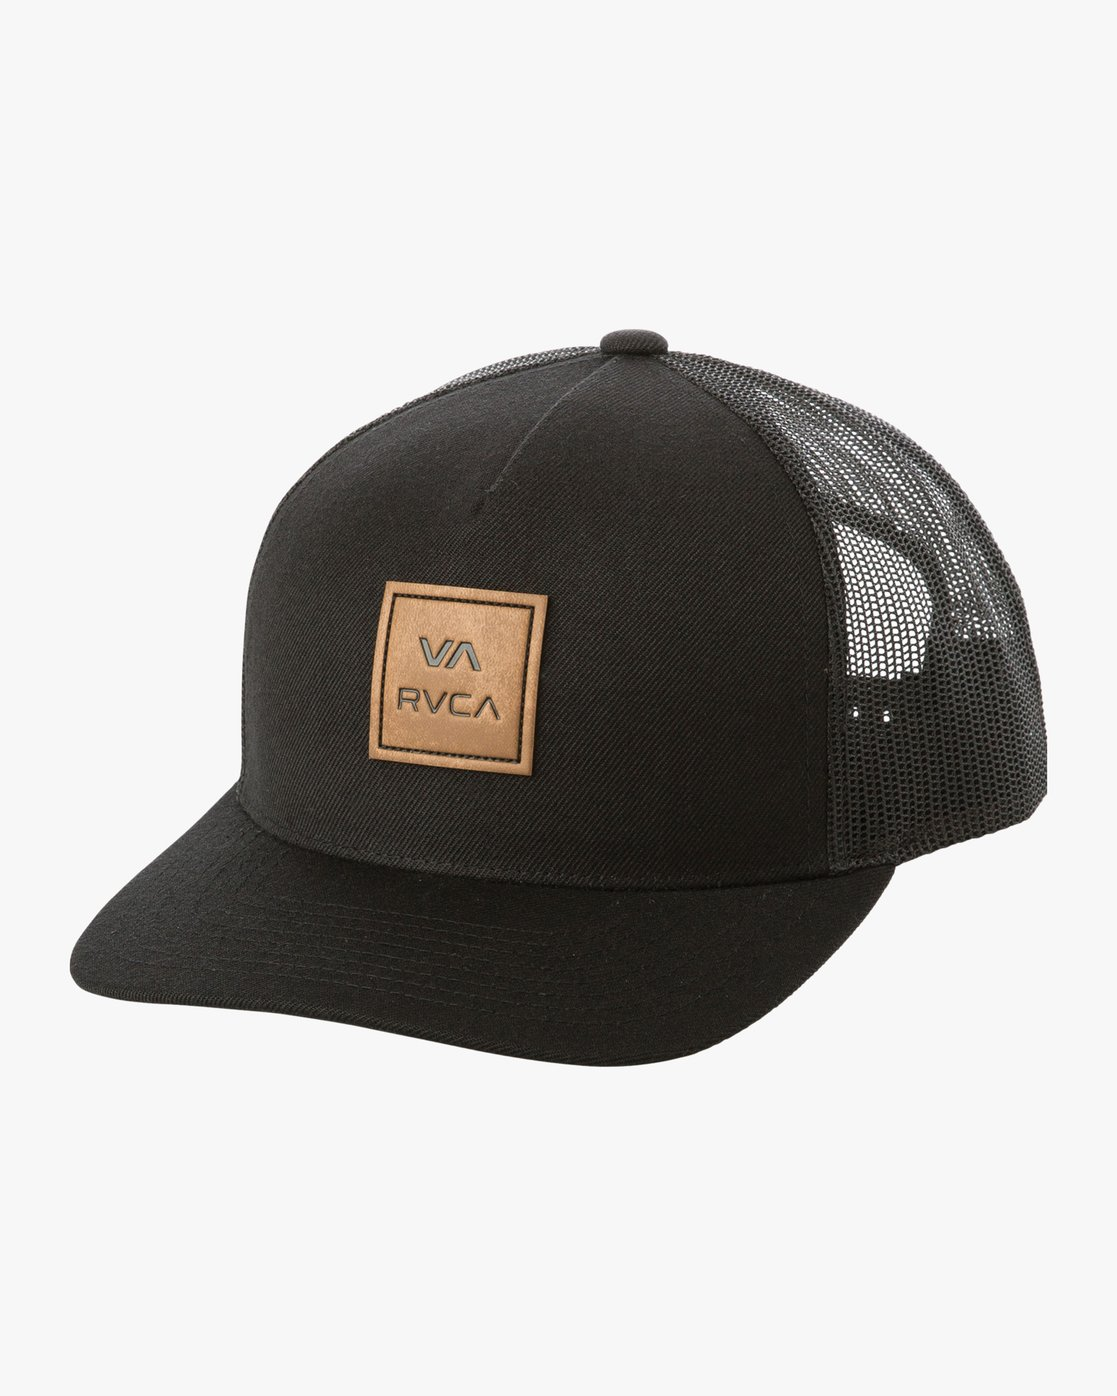 69590b3ecafb9 0 VA All The Way Curved Brim Trucker Hat Black MAHWPRVA RVCA